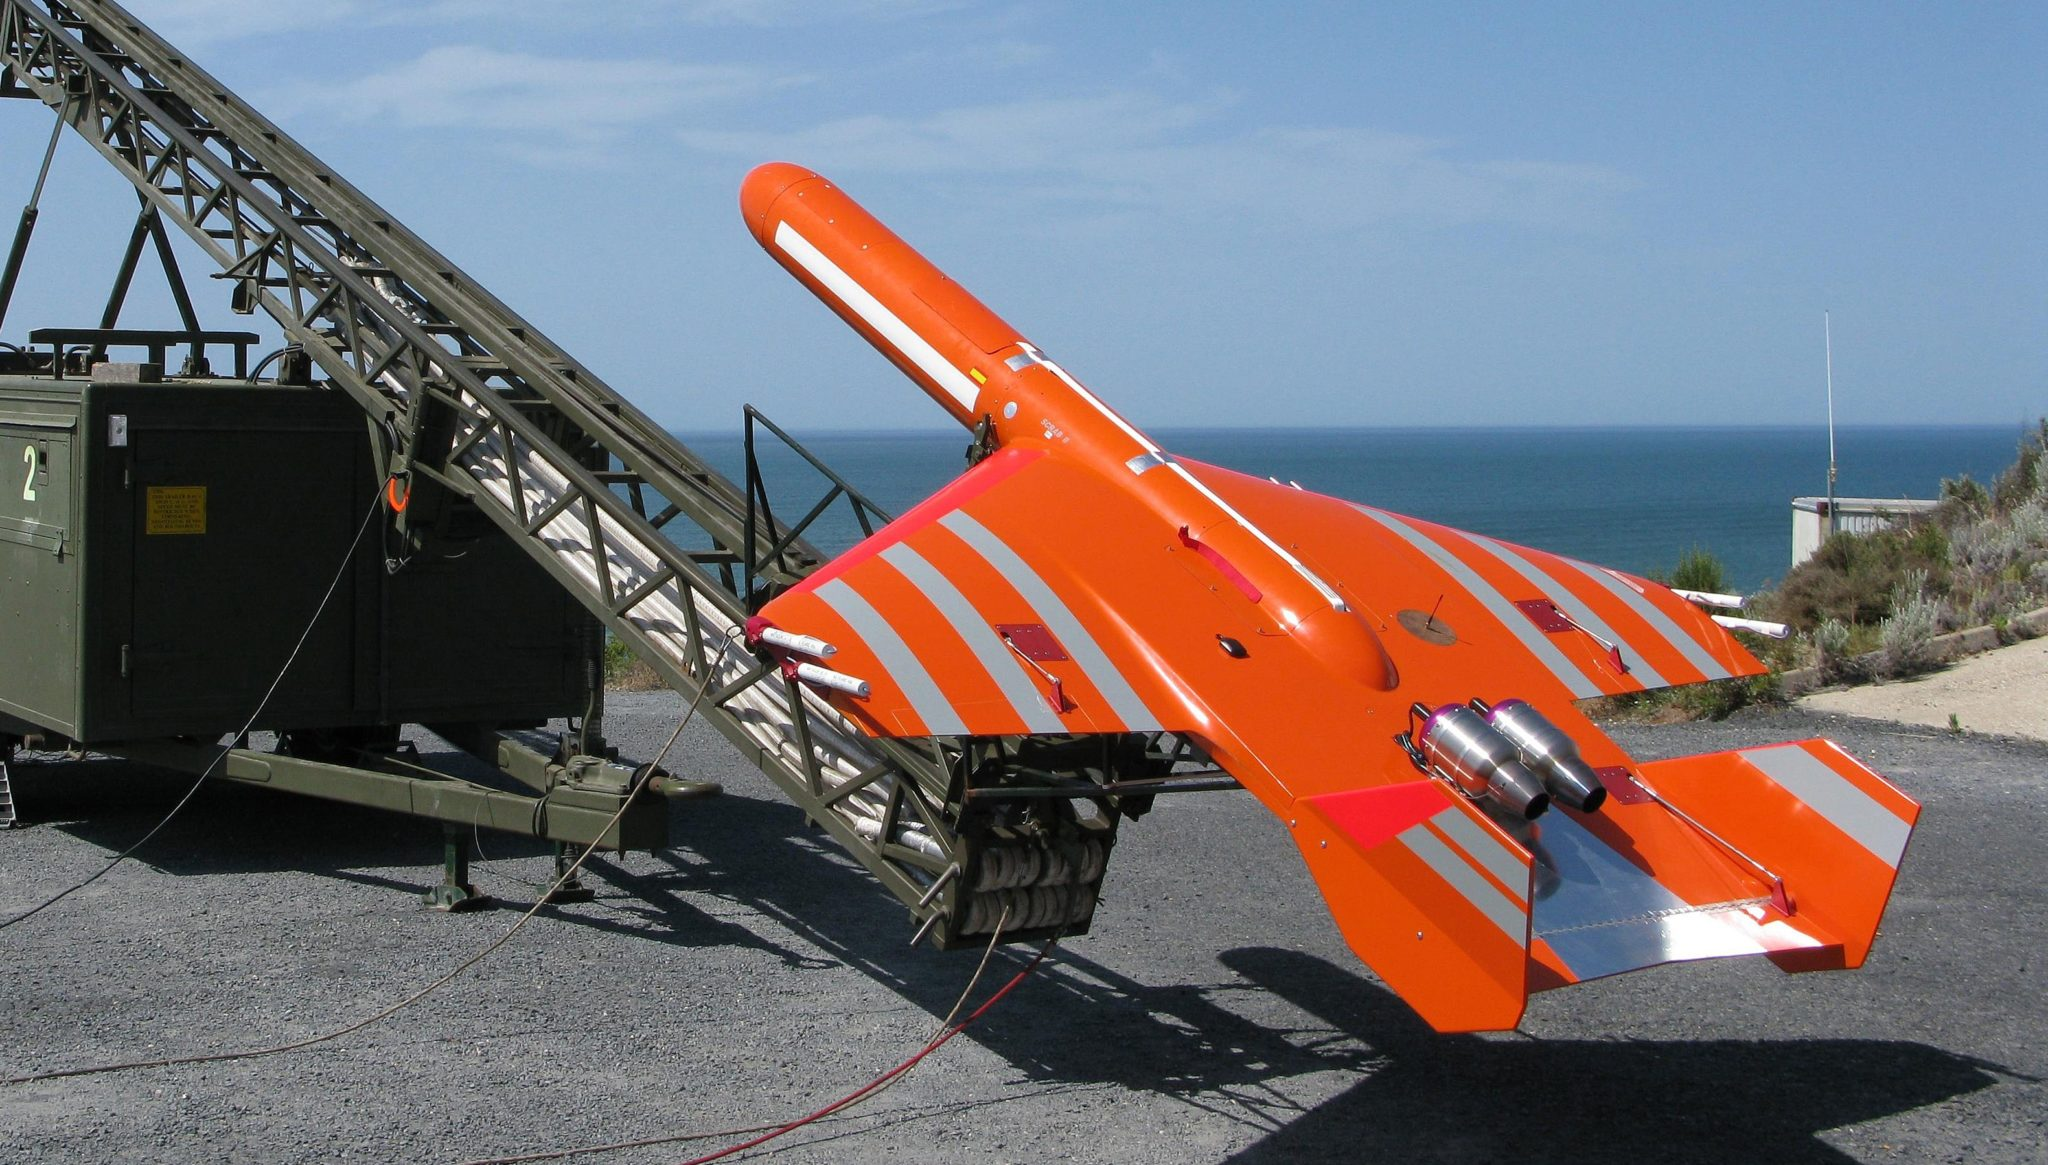 Estonian Ministry of Defence to use SCR's aerial targets - sUAS News - The Business of Drones thumbnail